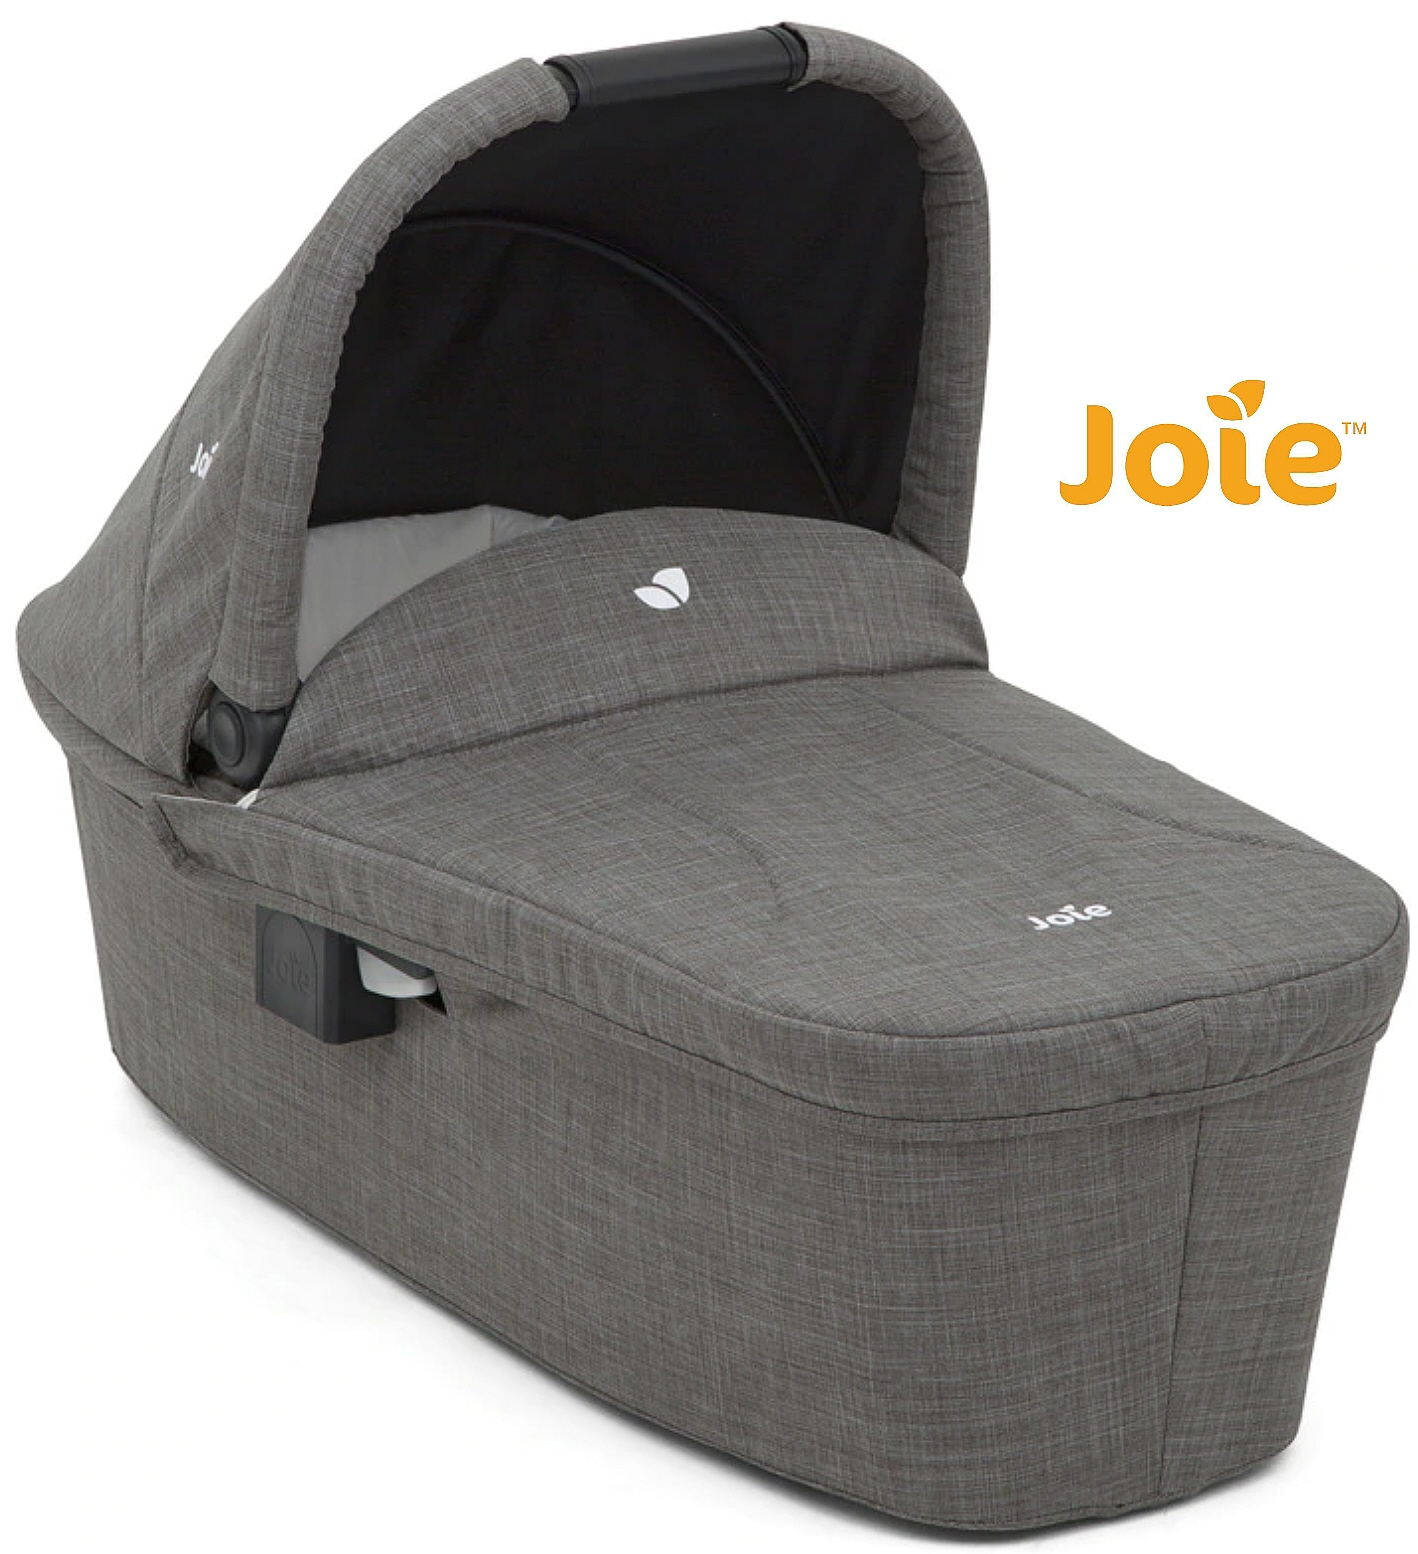 capazo Ramble joie color gris